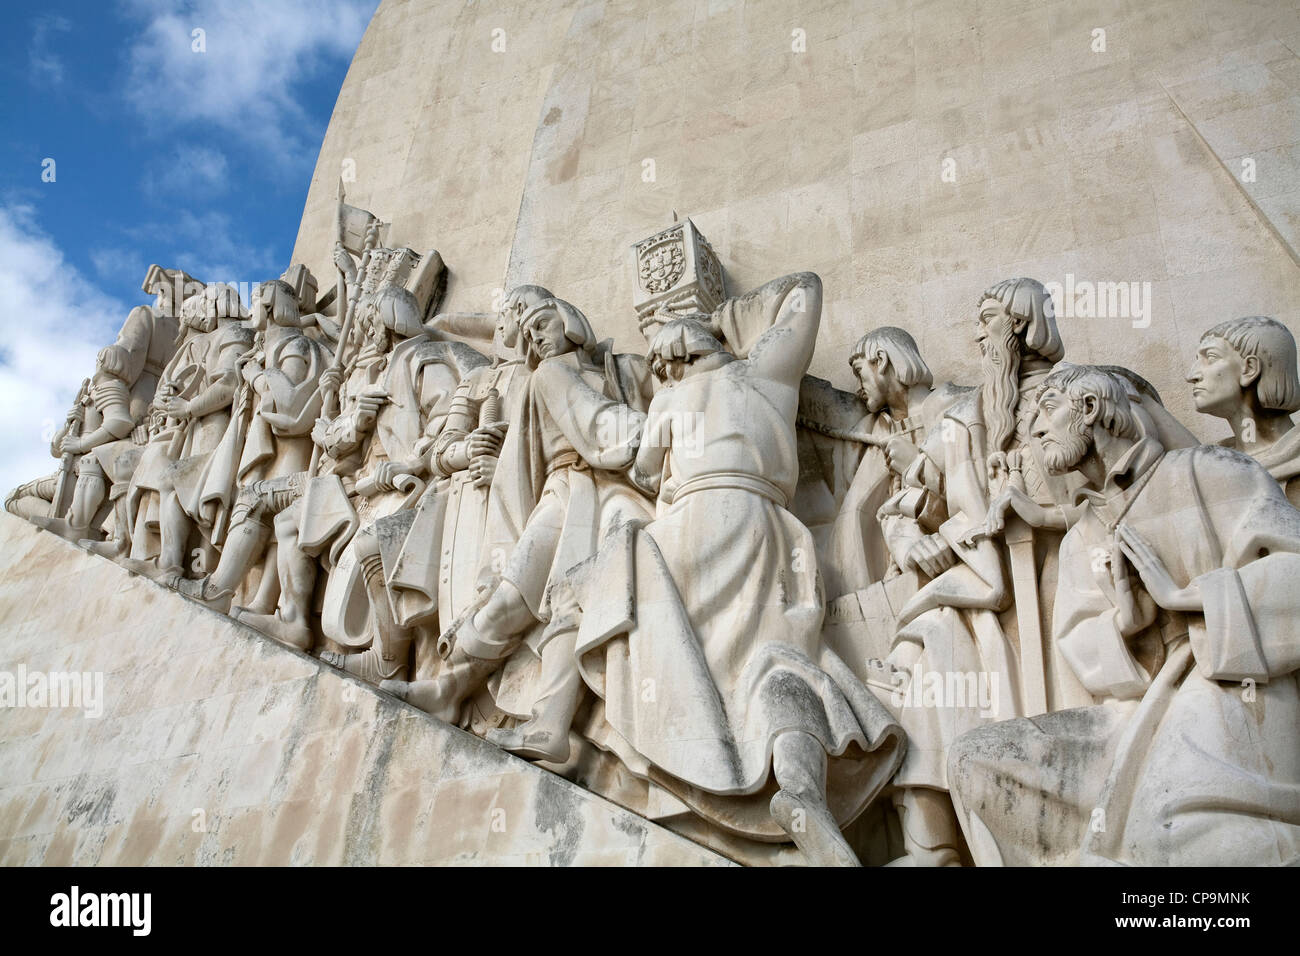 Monument to Portuguese Discoveries name given to intensive maritime exploration by Portuguese during 15th and 16th - Stock Image